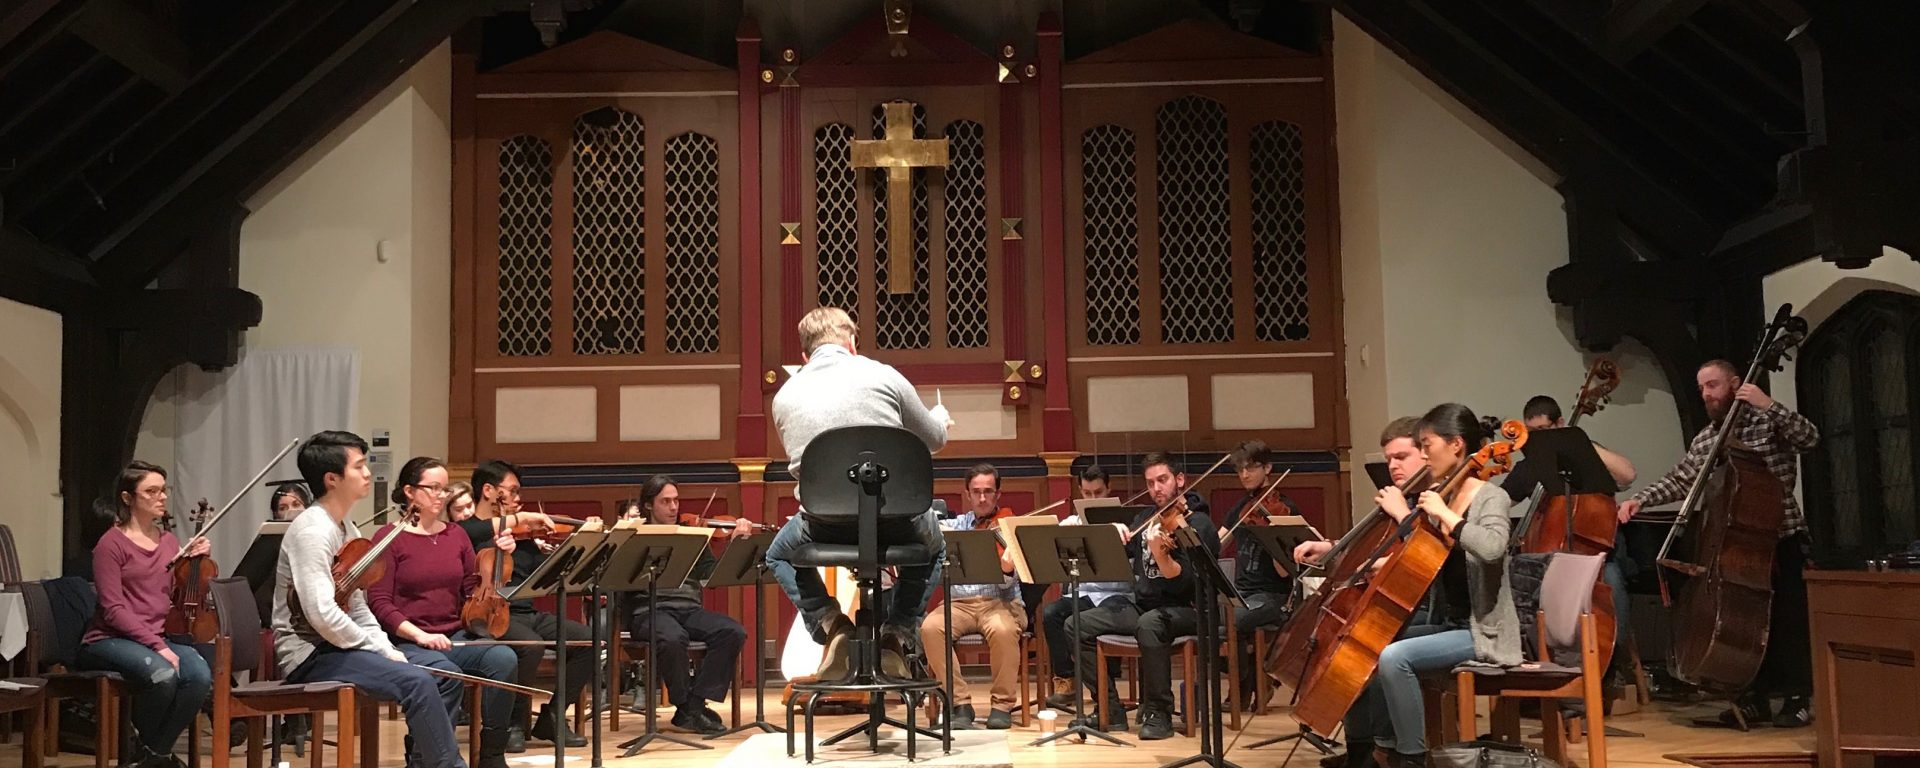 Washington Heights Chamber Orchestra, WHCO, music, Toru Takemitsu, A Thousand Cranes, concert, orchestra, Kenji Bunch, Karen Tanaka, Christopher Theofanidis